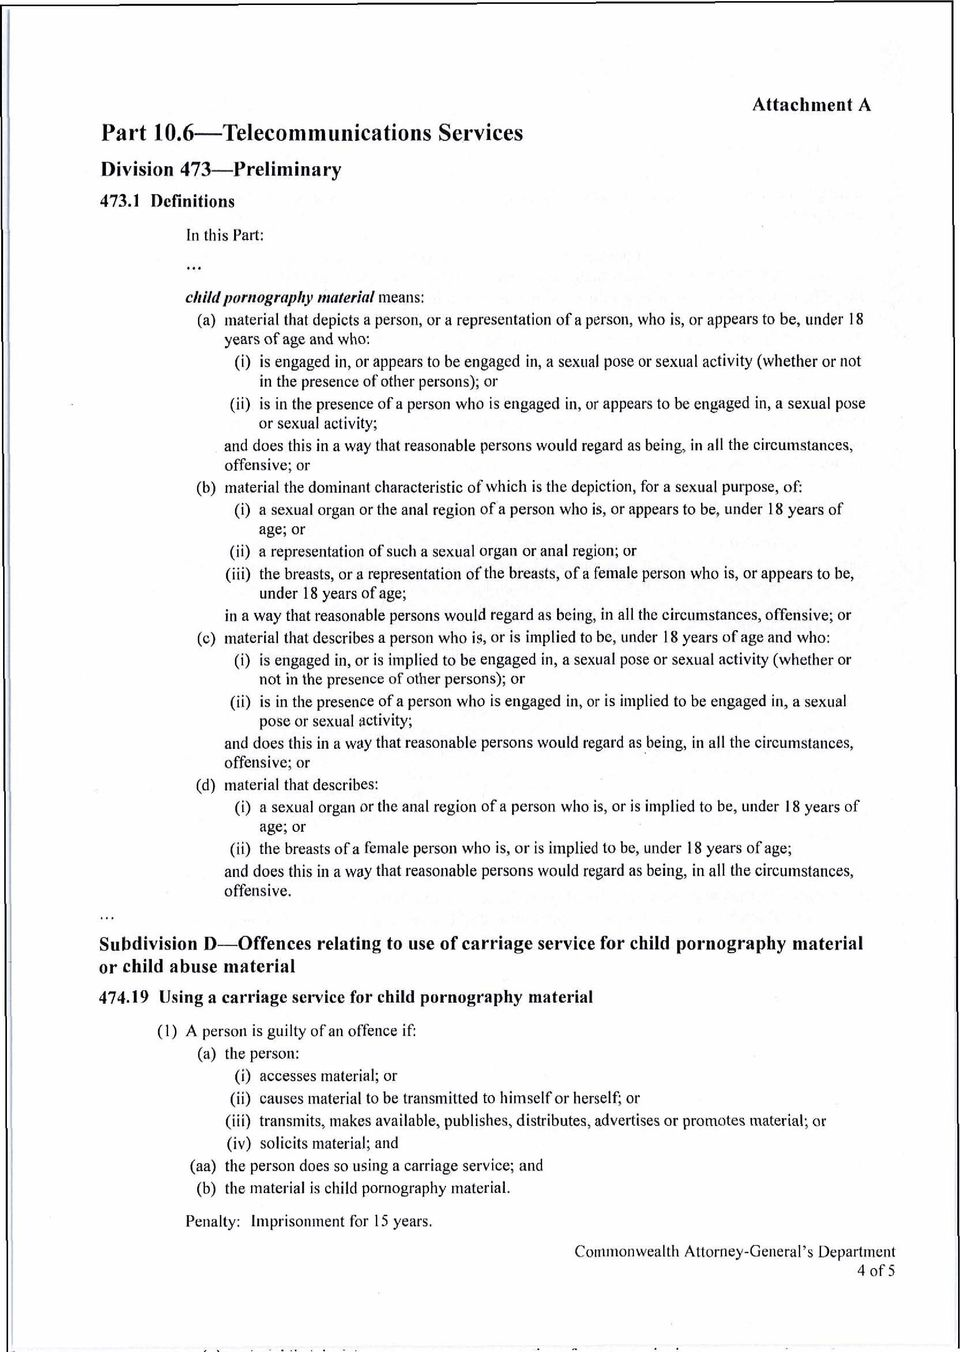 who: (i) is engaged in, or appears to be engaged in, a sexual pose or sexual activity (whether or not in the presence of other persons); or (ii) is in the presence of a person who is engaged in, or